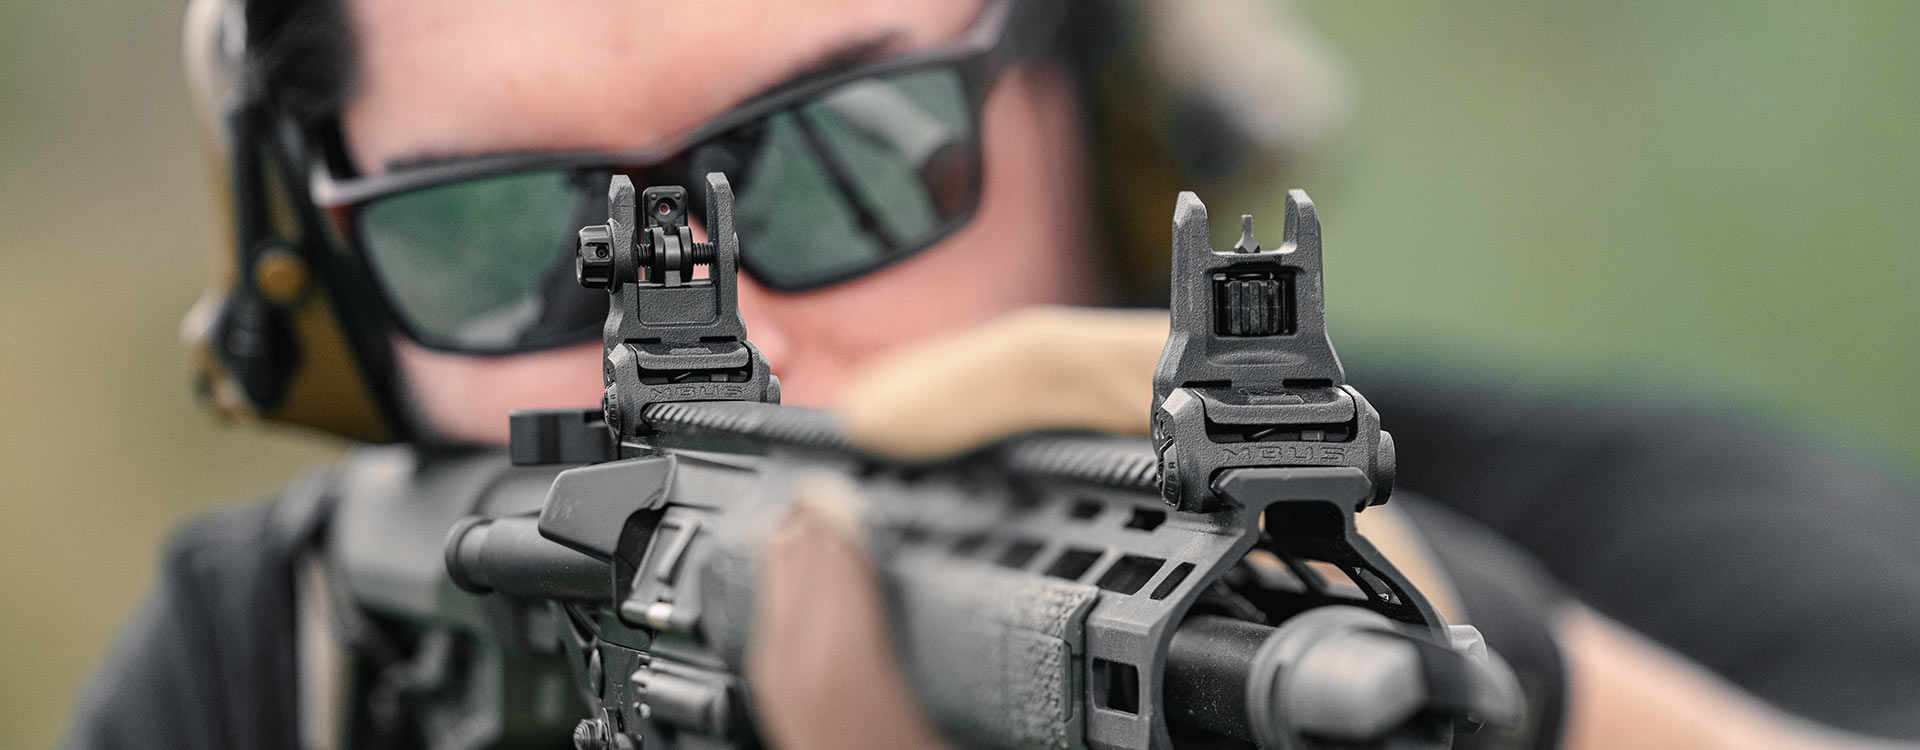 Shooter in Magpul Eyewear aiming with a set of MBUS 3 Sights on an AR15